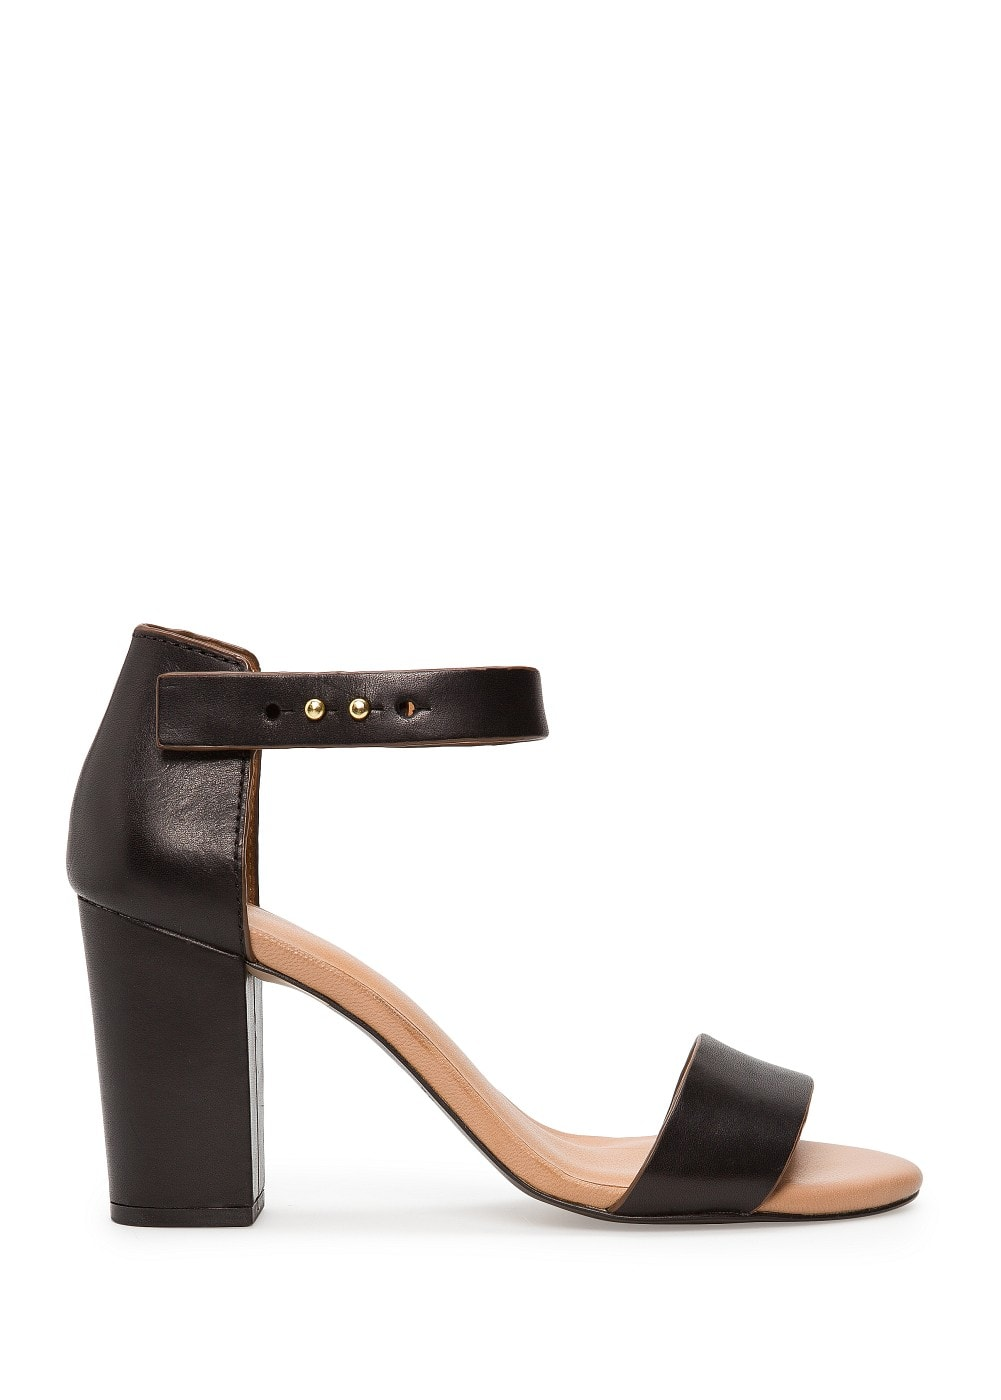 Leather ankle strap sandals